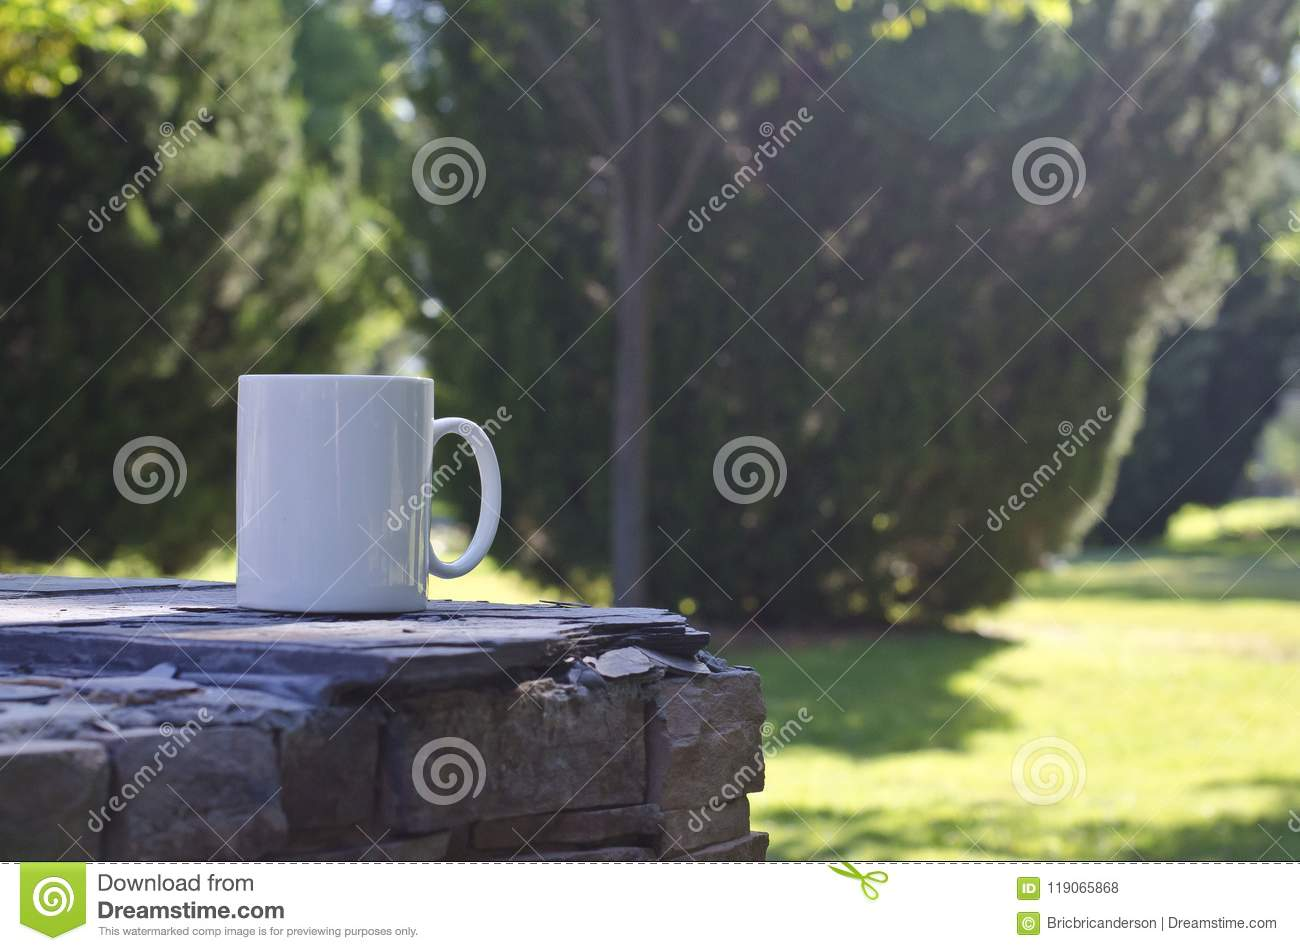 A blank white coffee mug on the ledge in the park